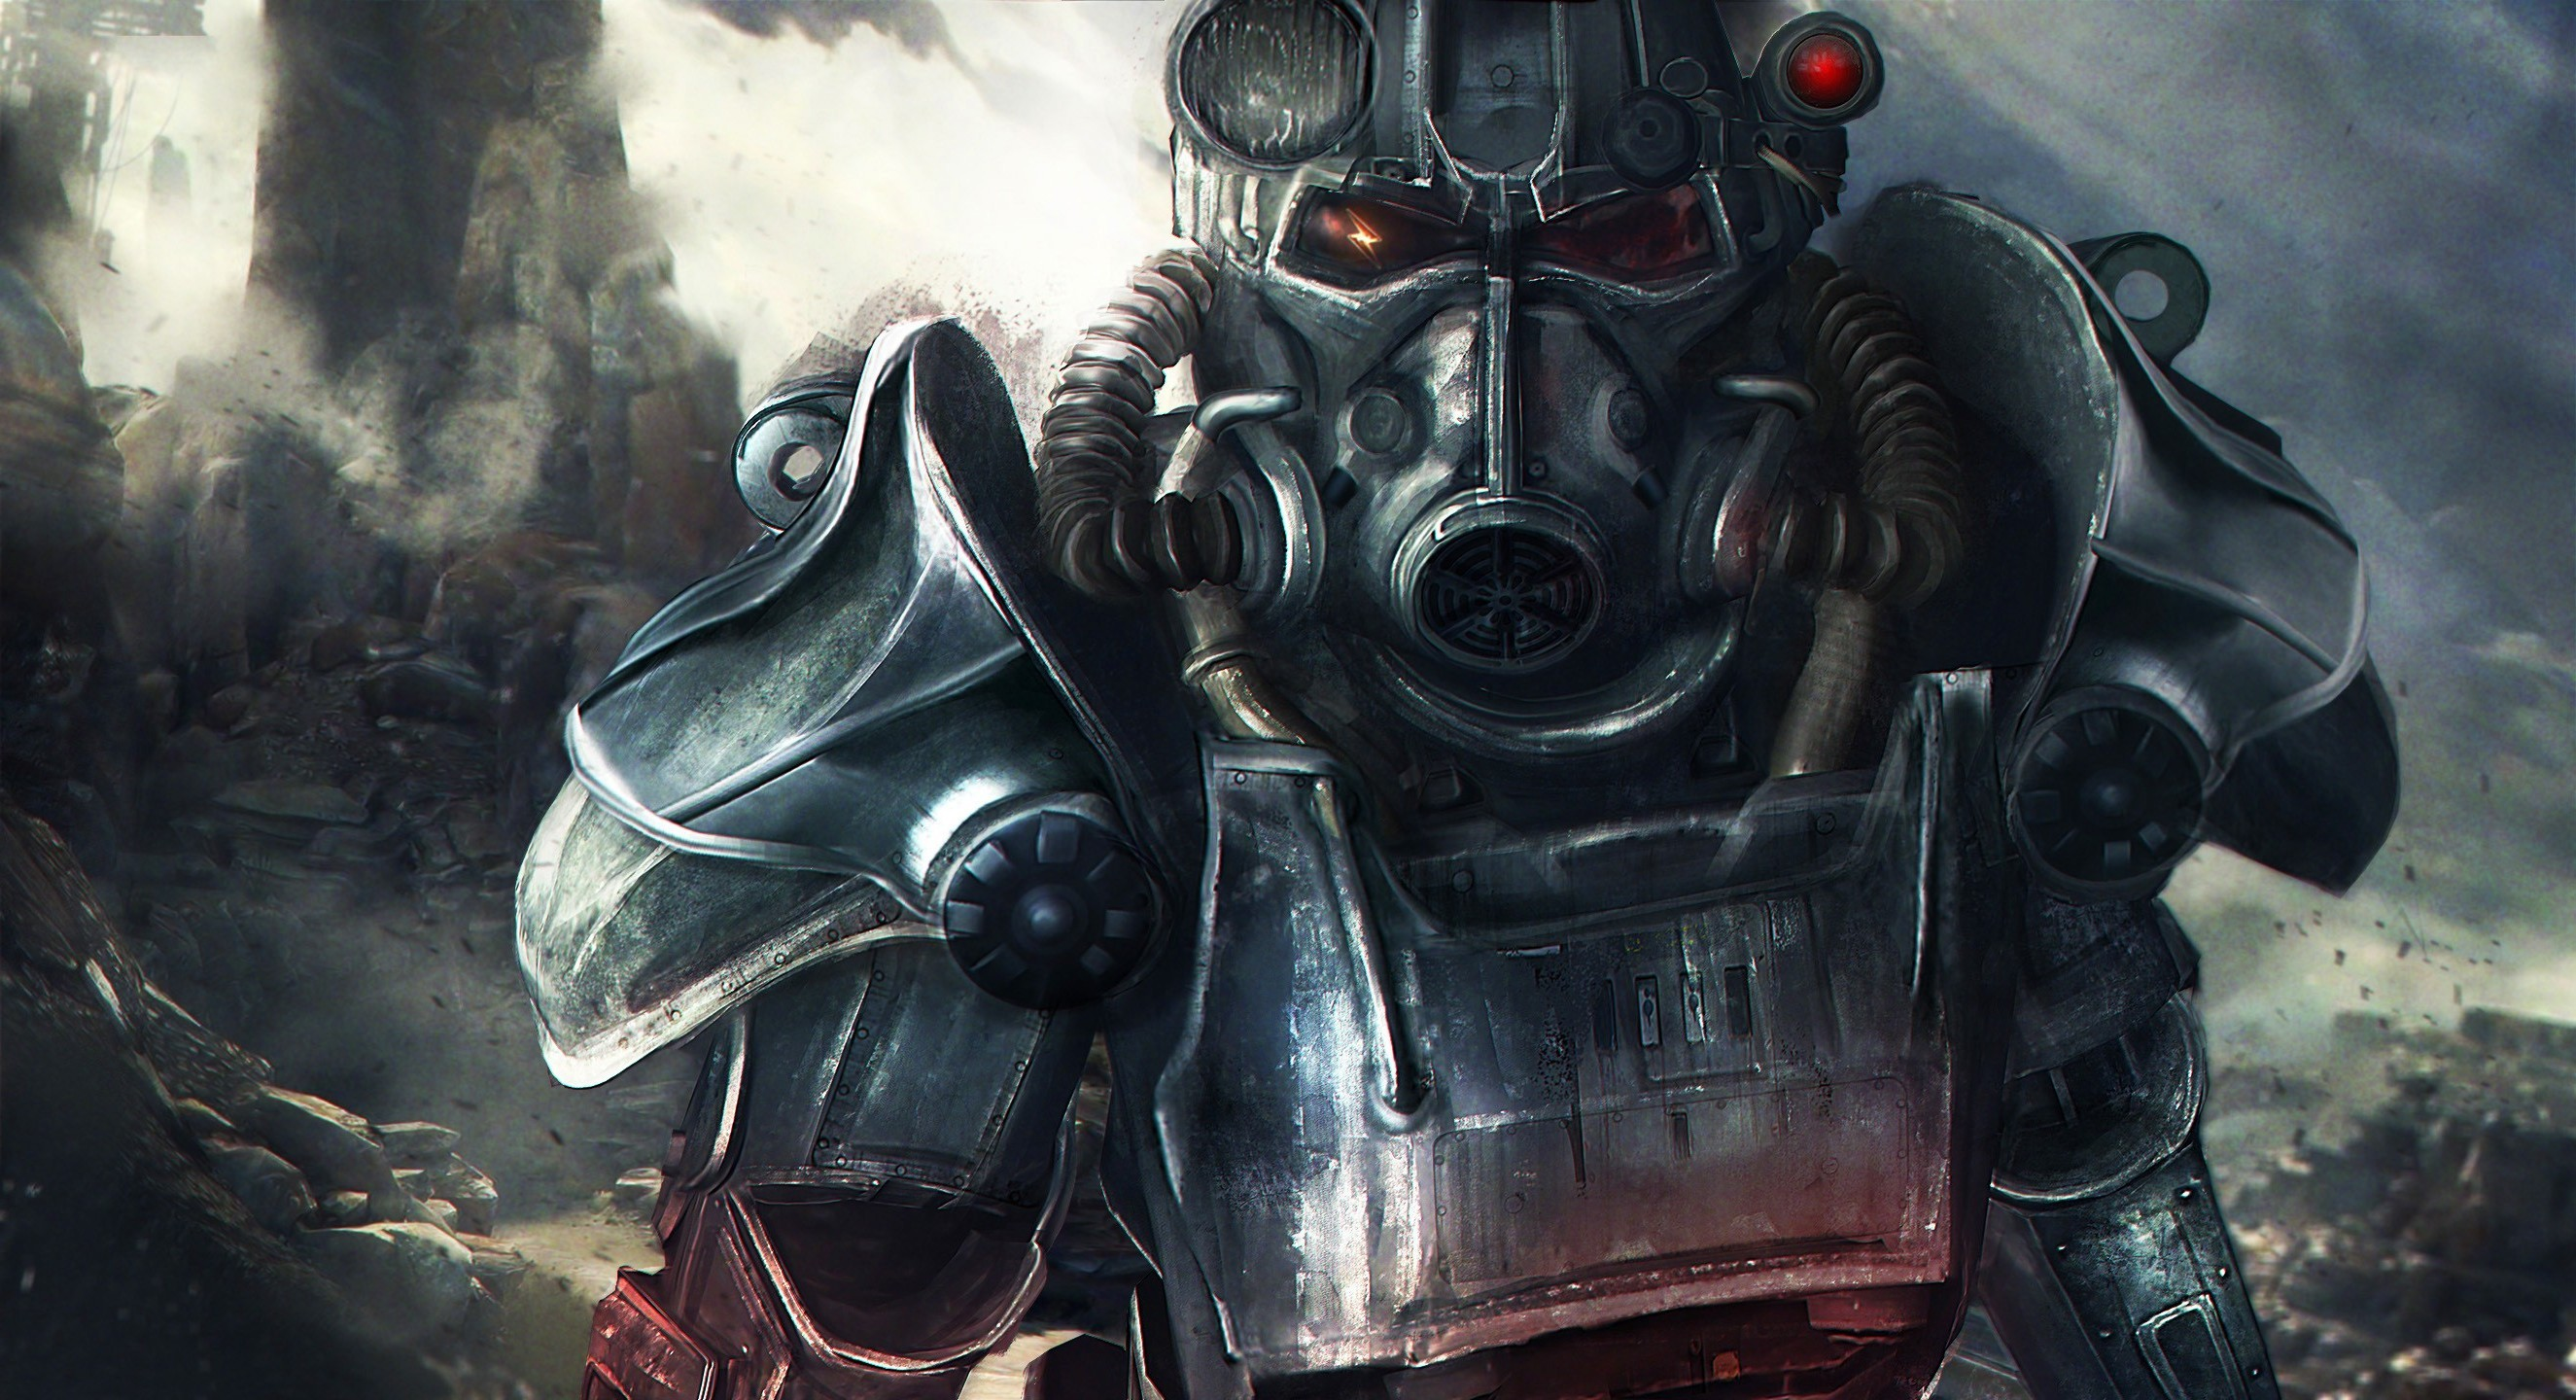 … wallpaper wallpaper; fallout 4 bethesda softworks brotherhood of steel  nuclear …